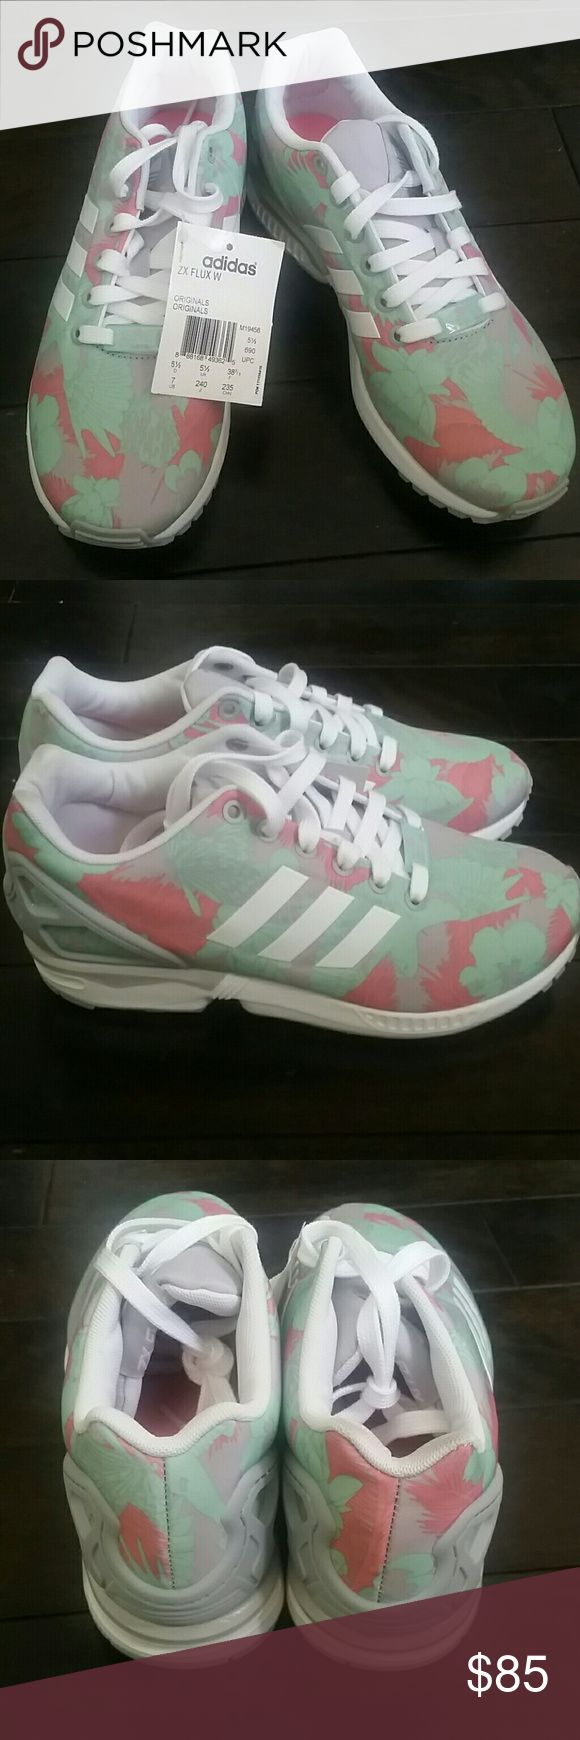 Adidas Torsion ZX Flux Brand new. No box. Adidas Shoes Sneakers